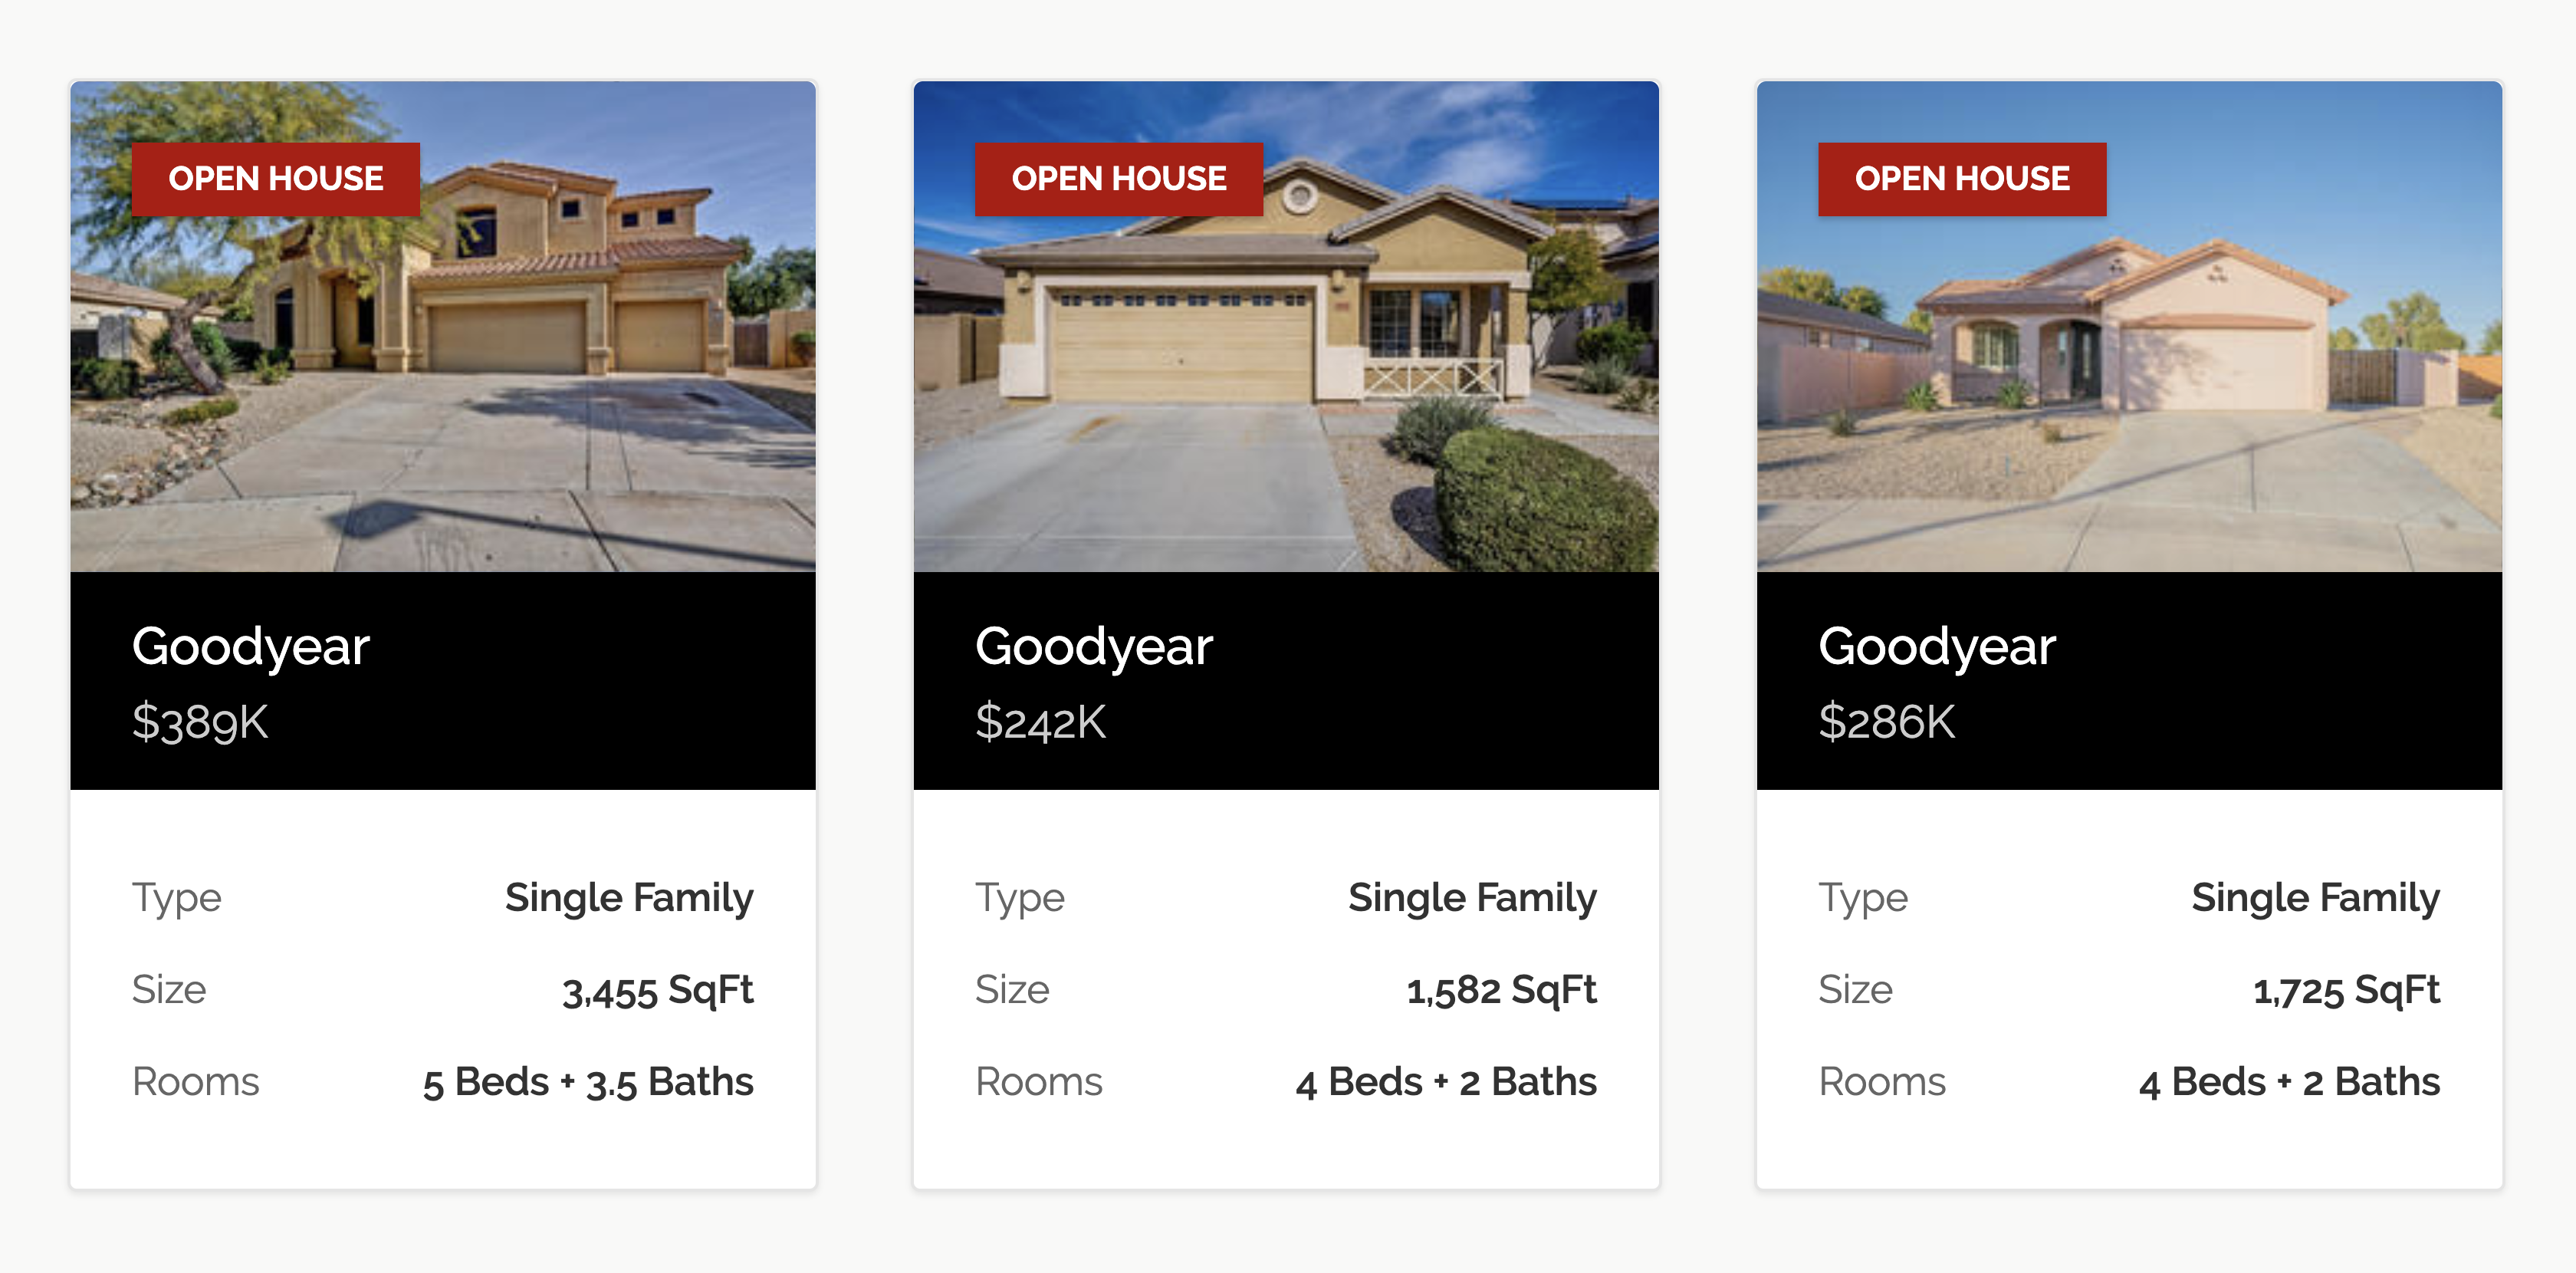 Open Houses In Goodyear This Weekend